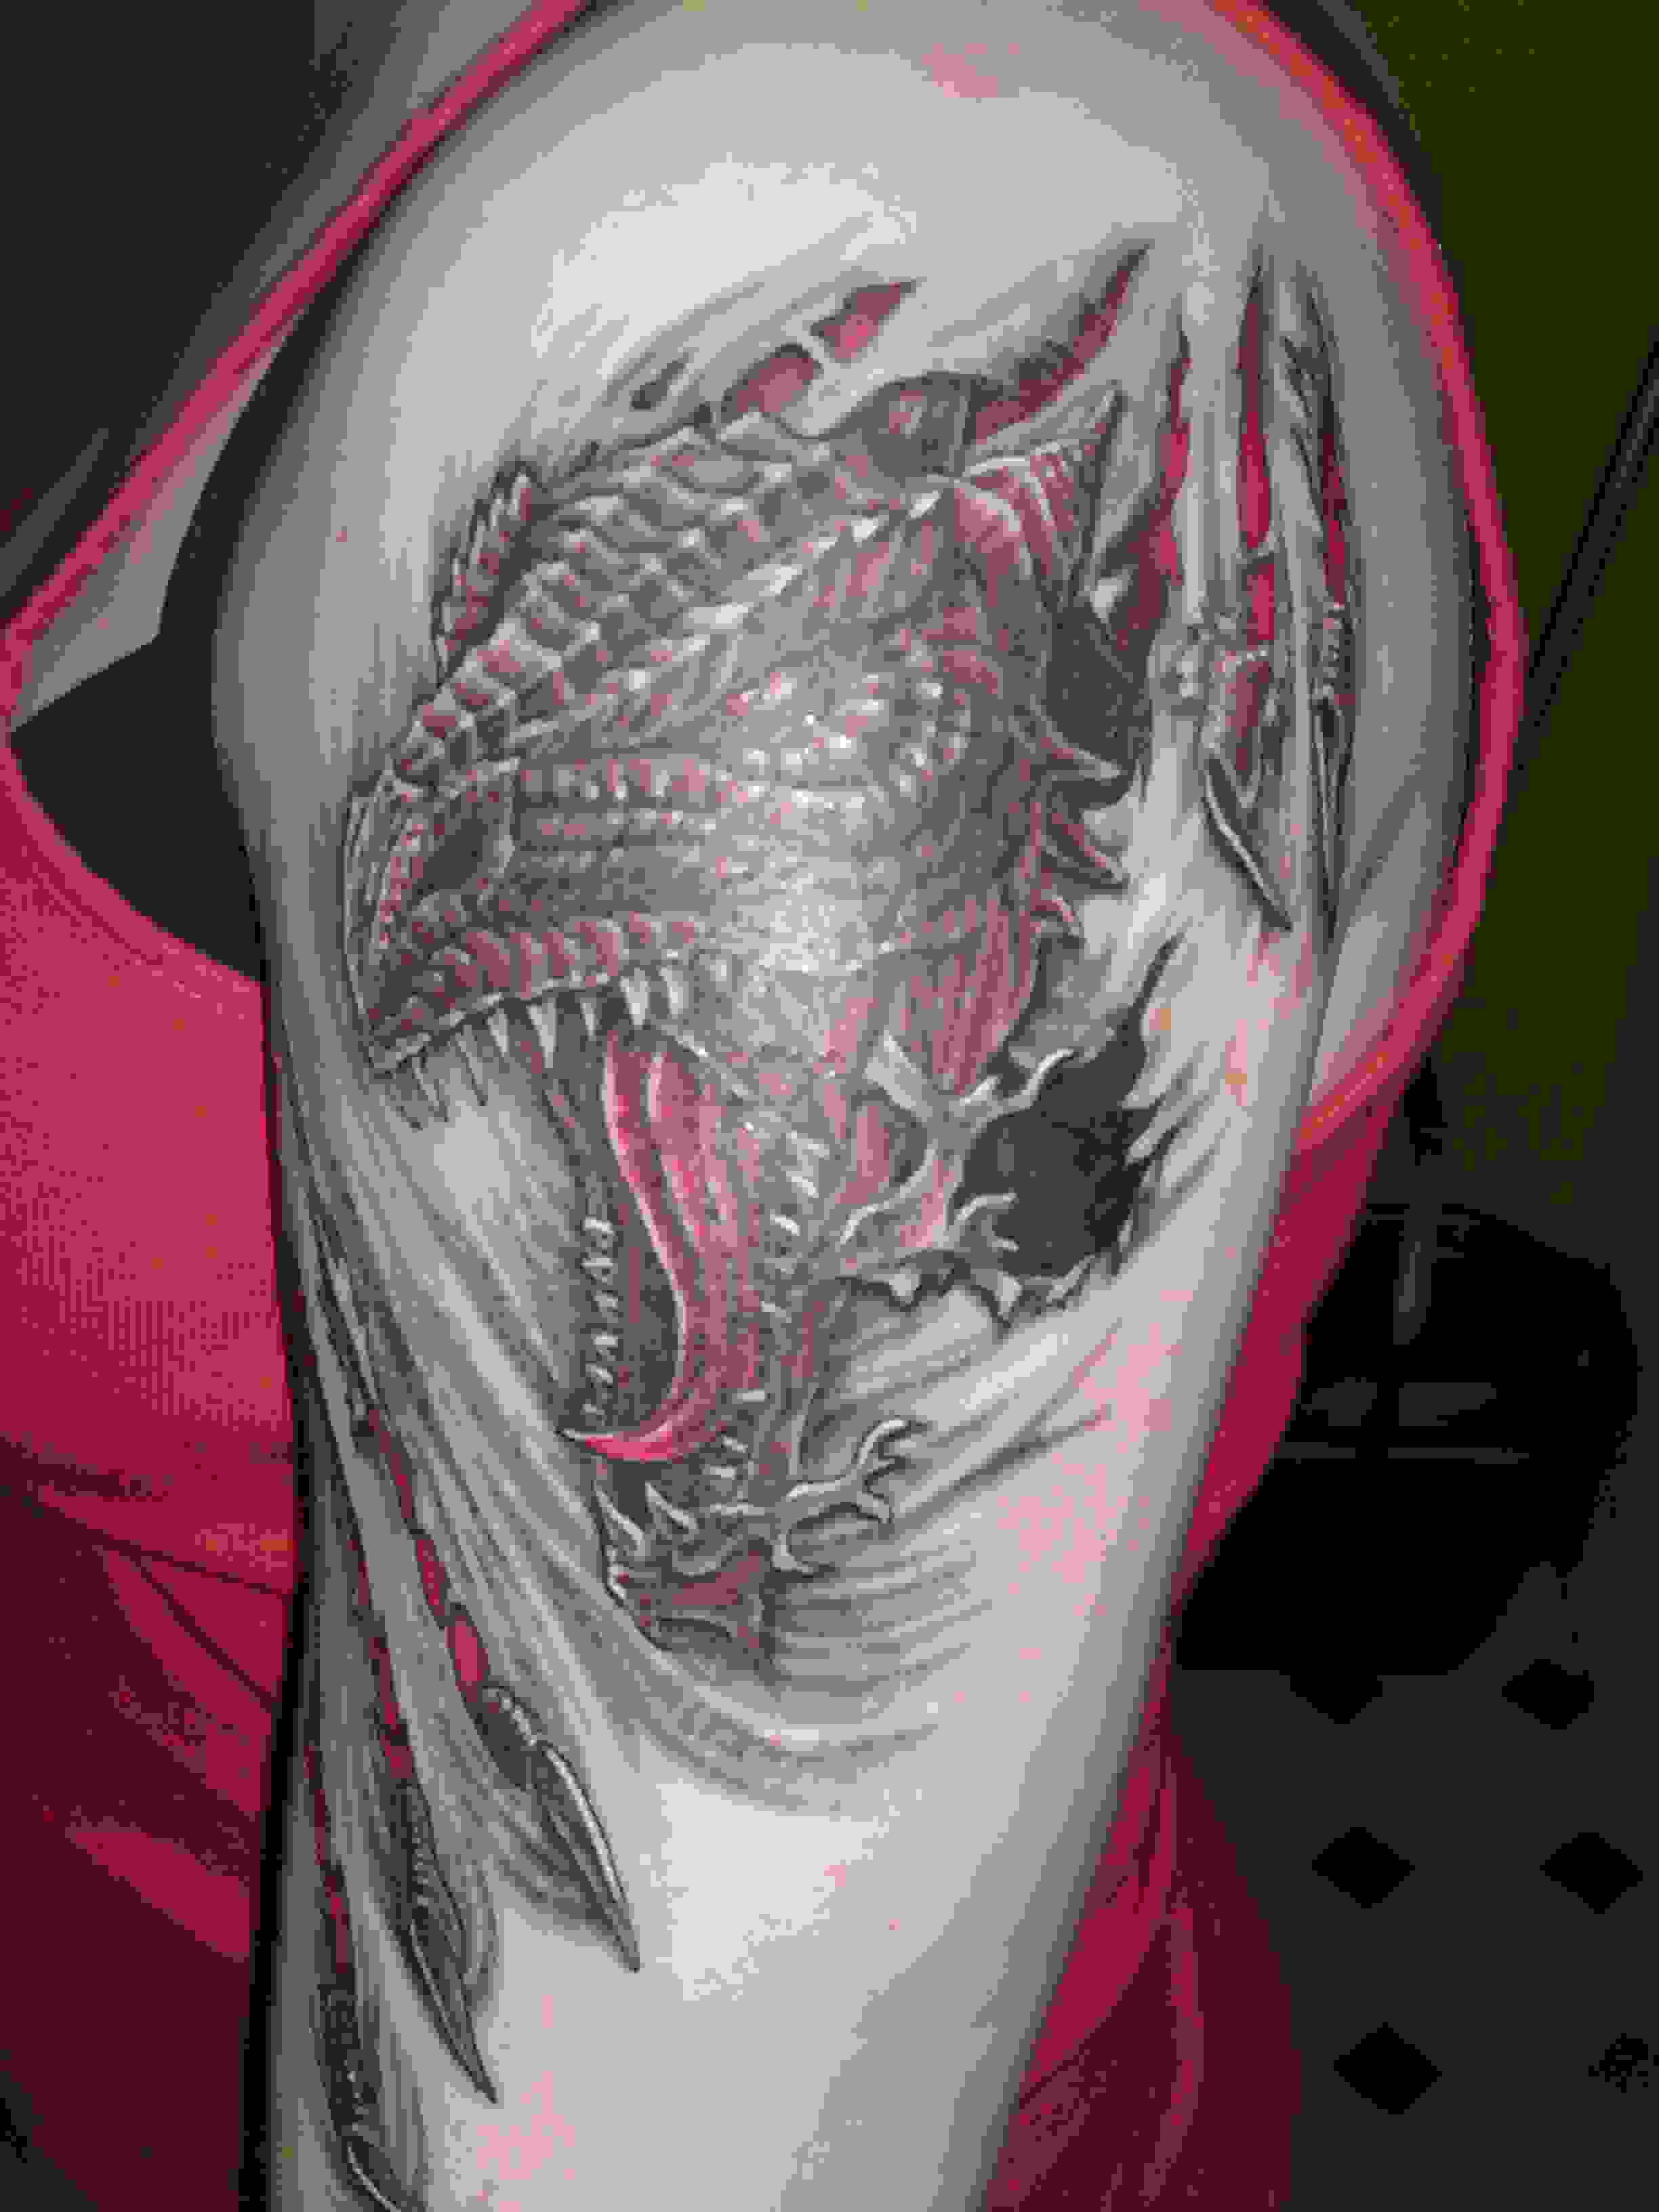 scary-3d-dragon-head-tattoo-on-arm